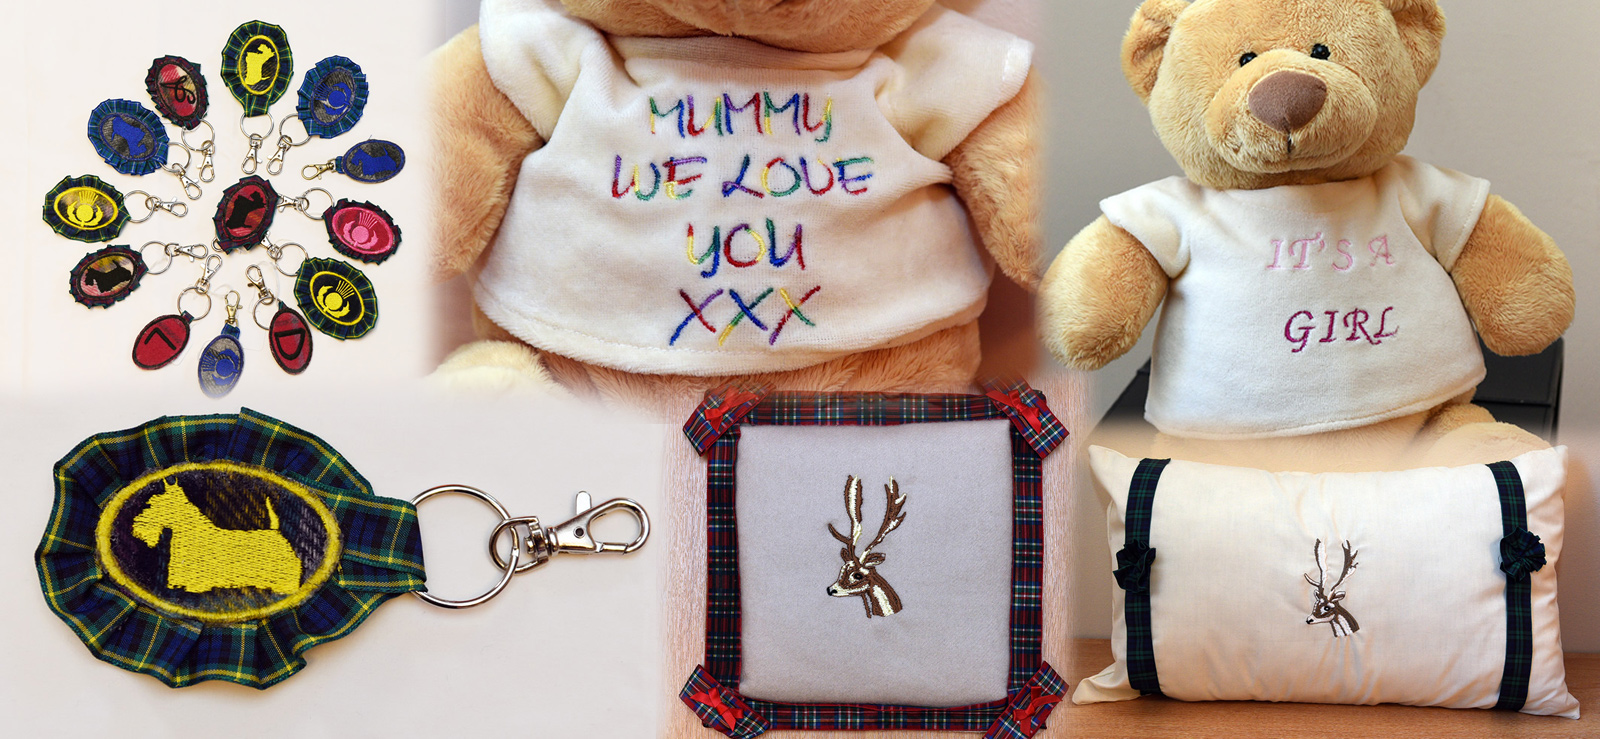 IN STITCHES PERSONALISED EMBROIDERY GIFTS ELGIN MORAY